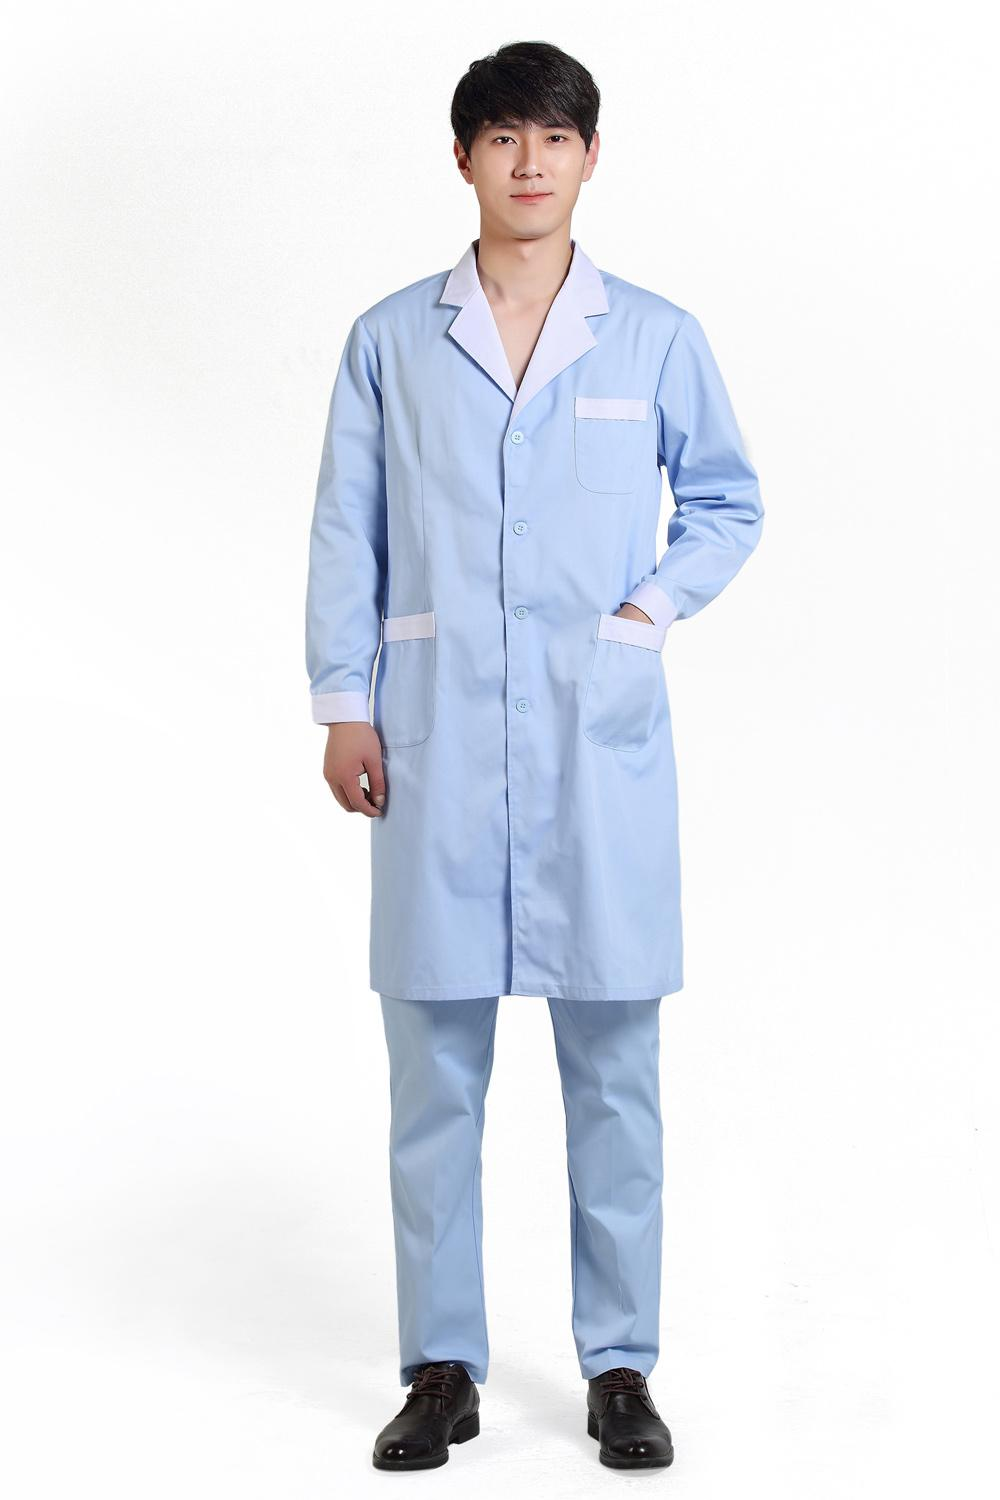 Why Doctor Wear White Coat | Down Coat